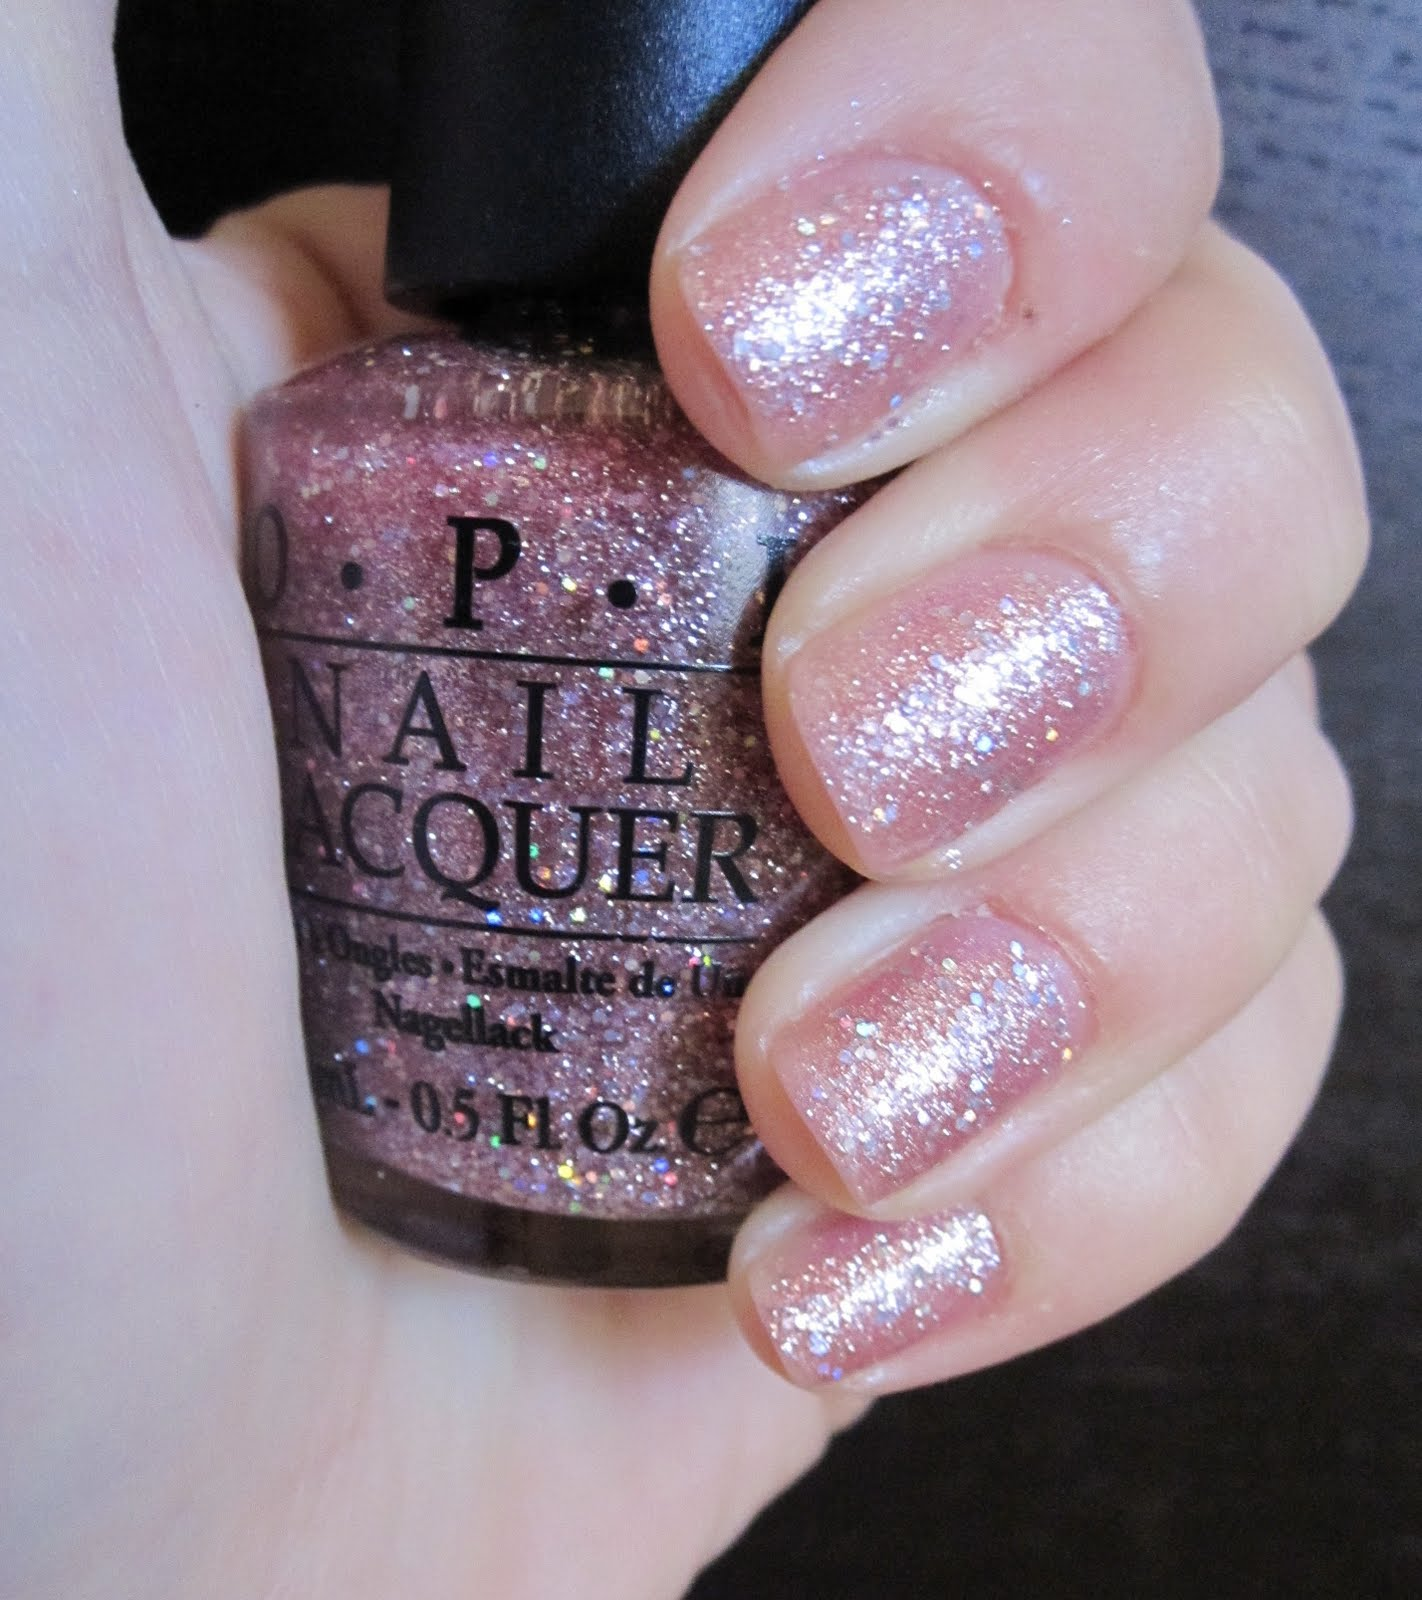 A Touch of Gloss: OPI Teenage Dream Nail Polish